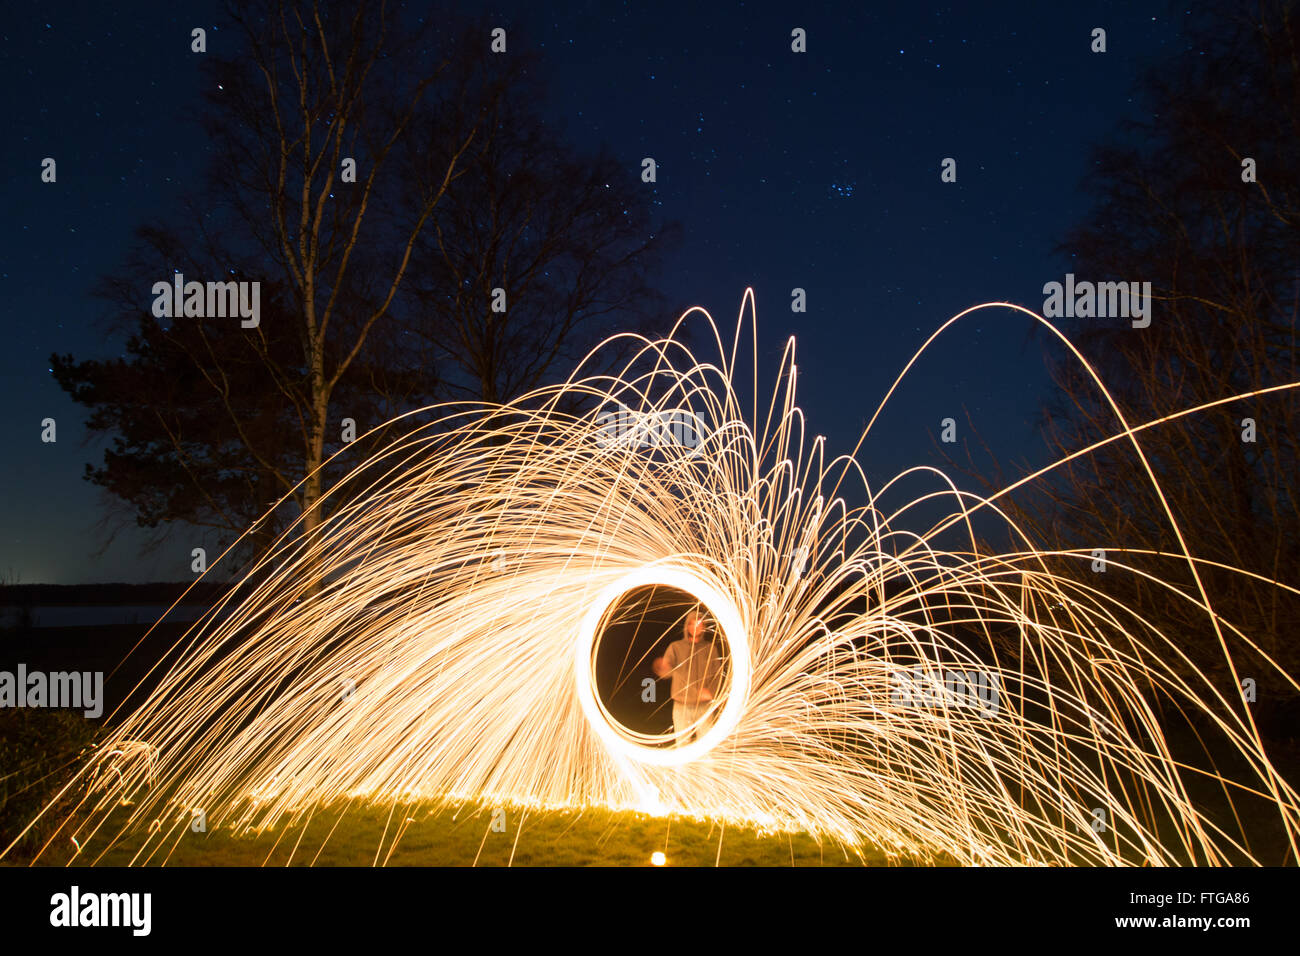 A young man performing steel wool photography. Stock Photo